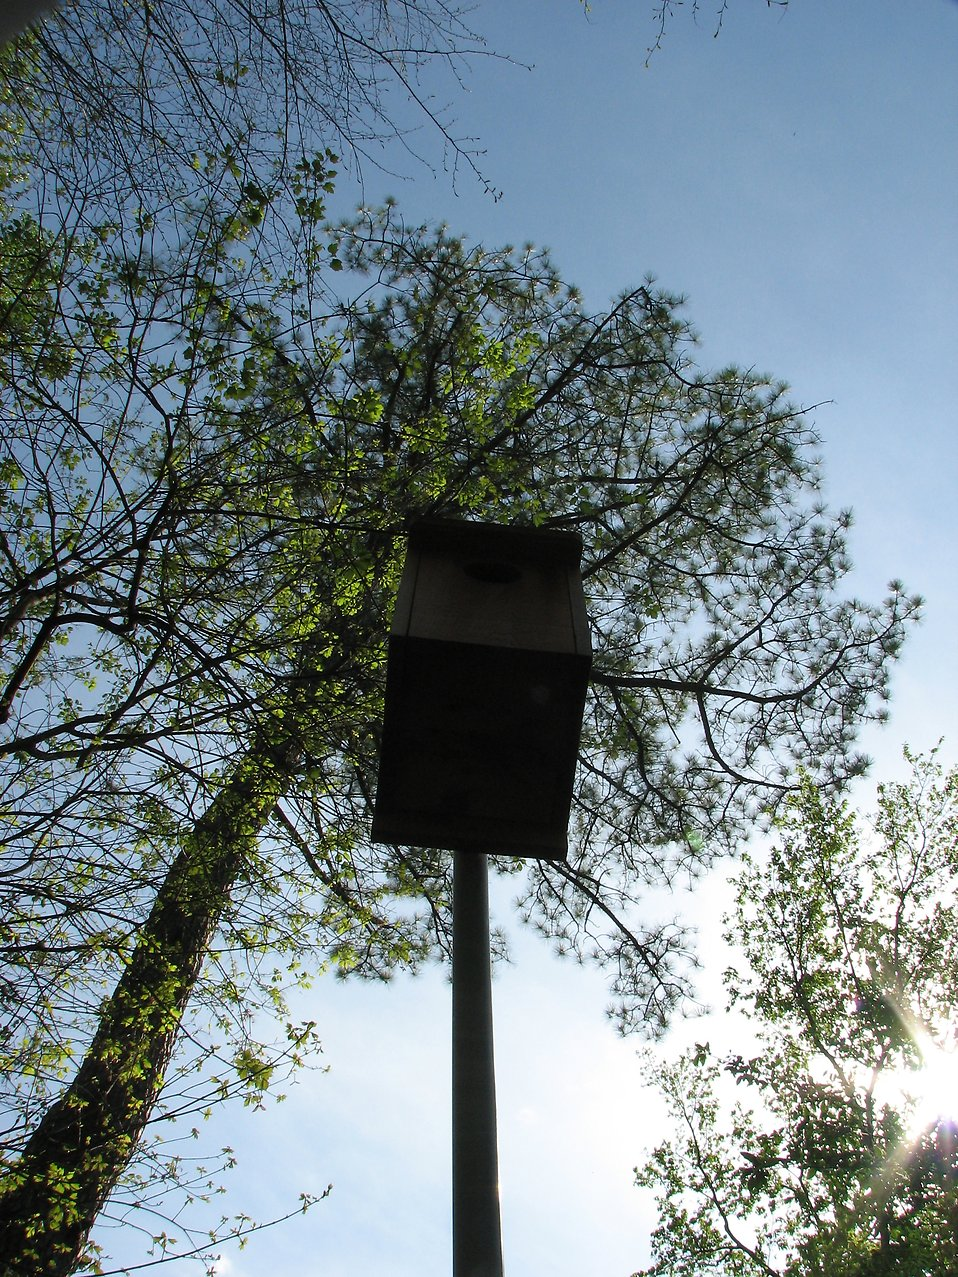 A bird house on a pole by trees : Free Stock Photo